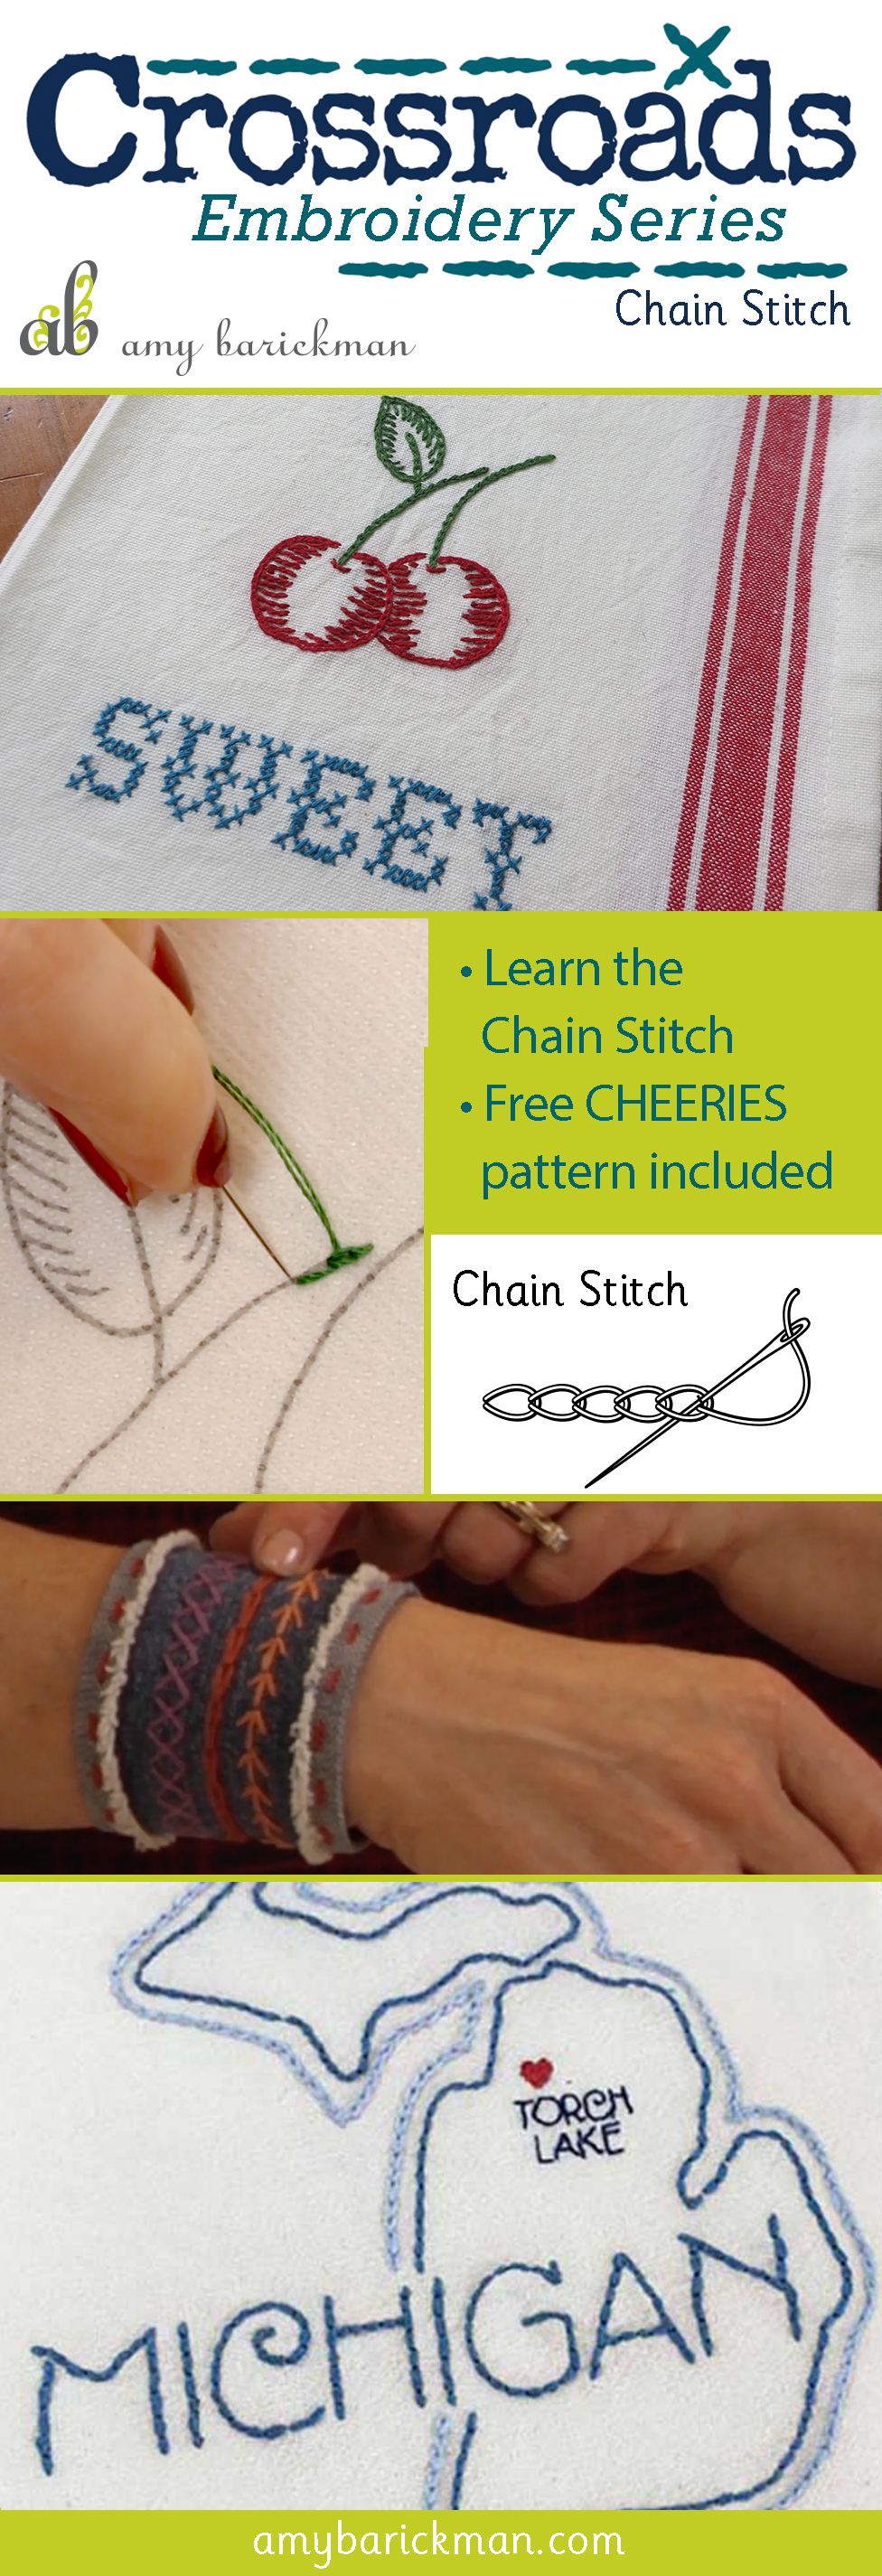 Author Amy Barickman's free tutorial and download for the chainstitch!